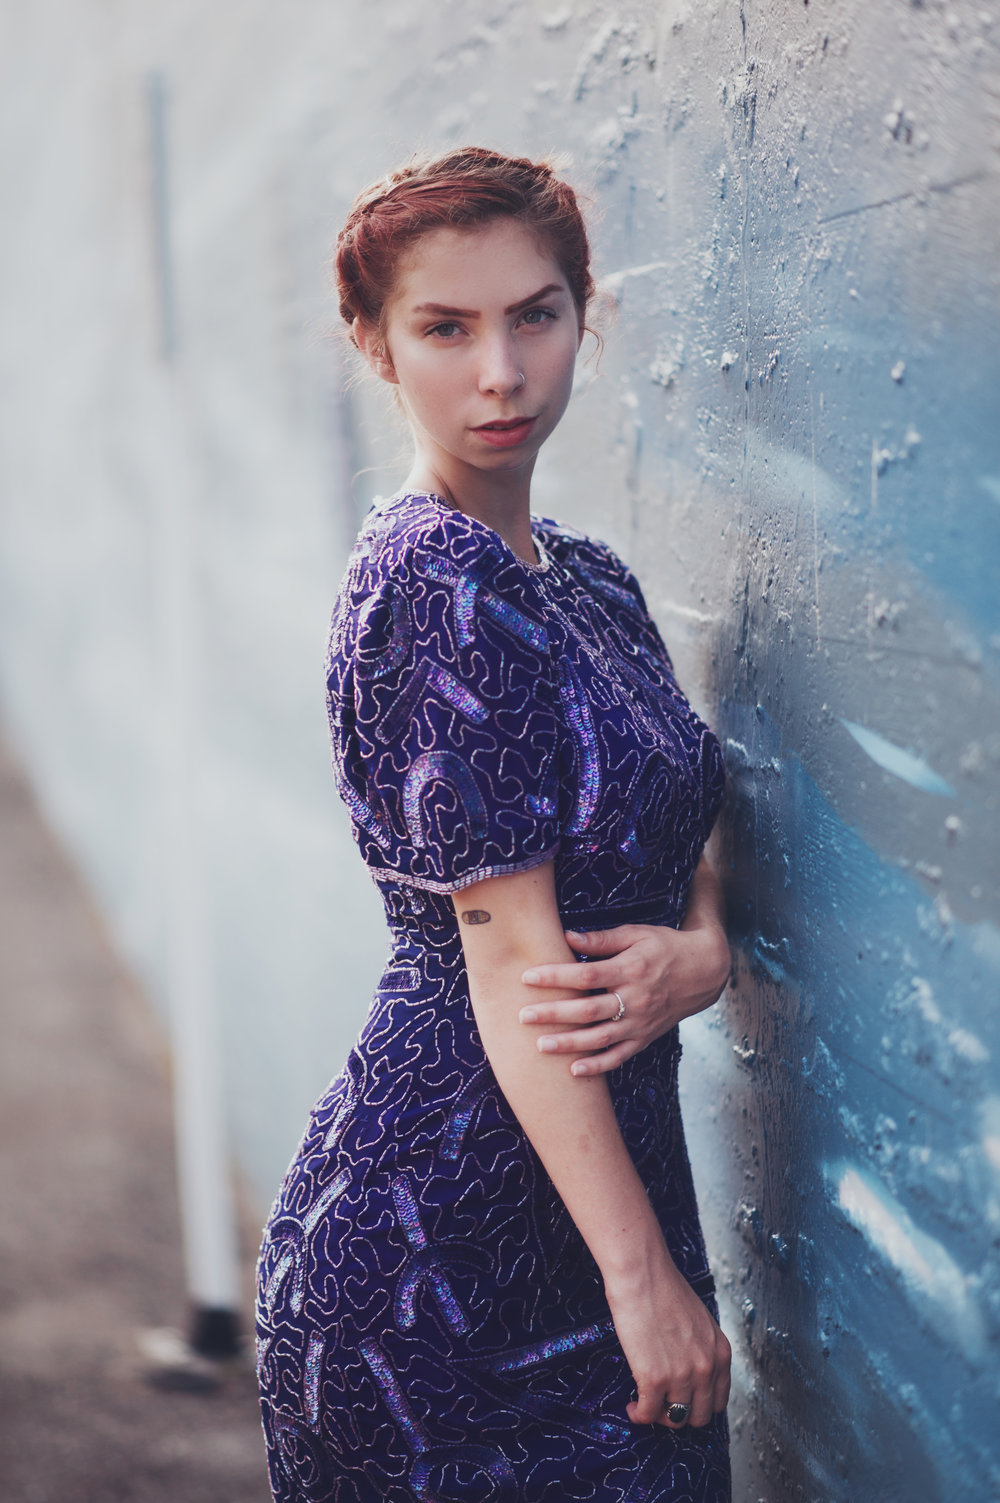 Indigo Vintage Lookbook - Seattle Based Boutique - Photographed by Kelsie Taylor Photography